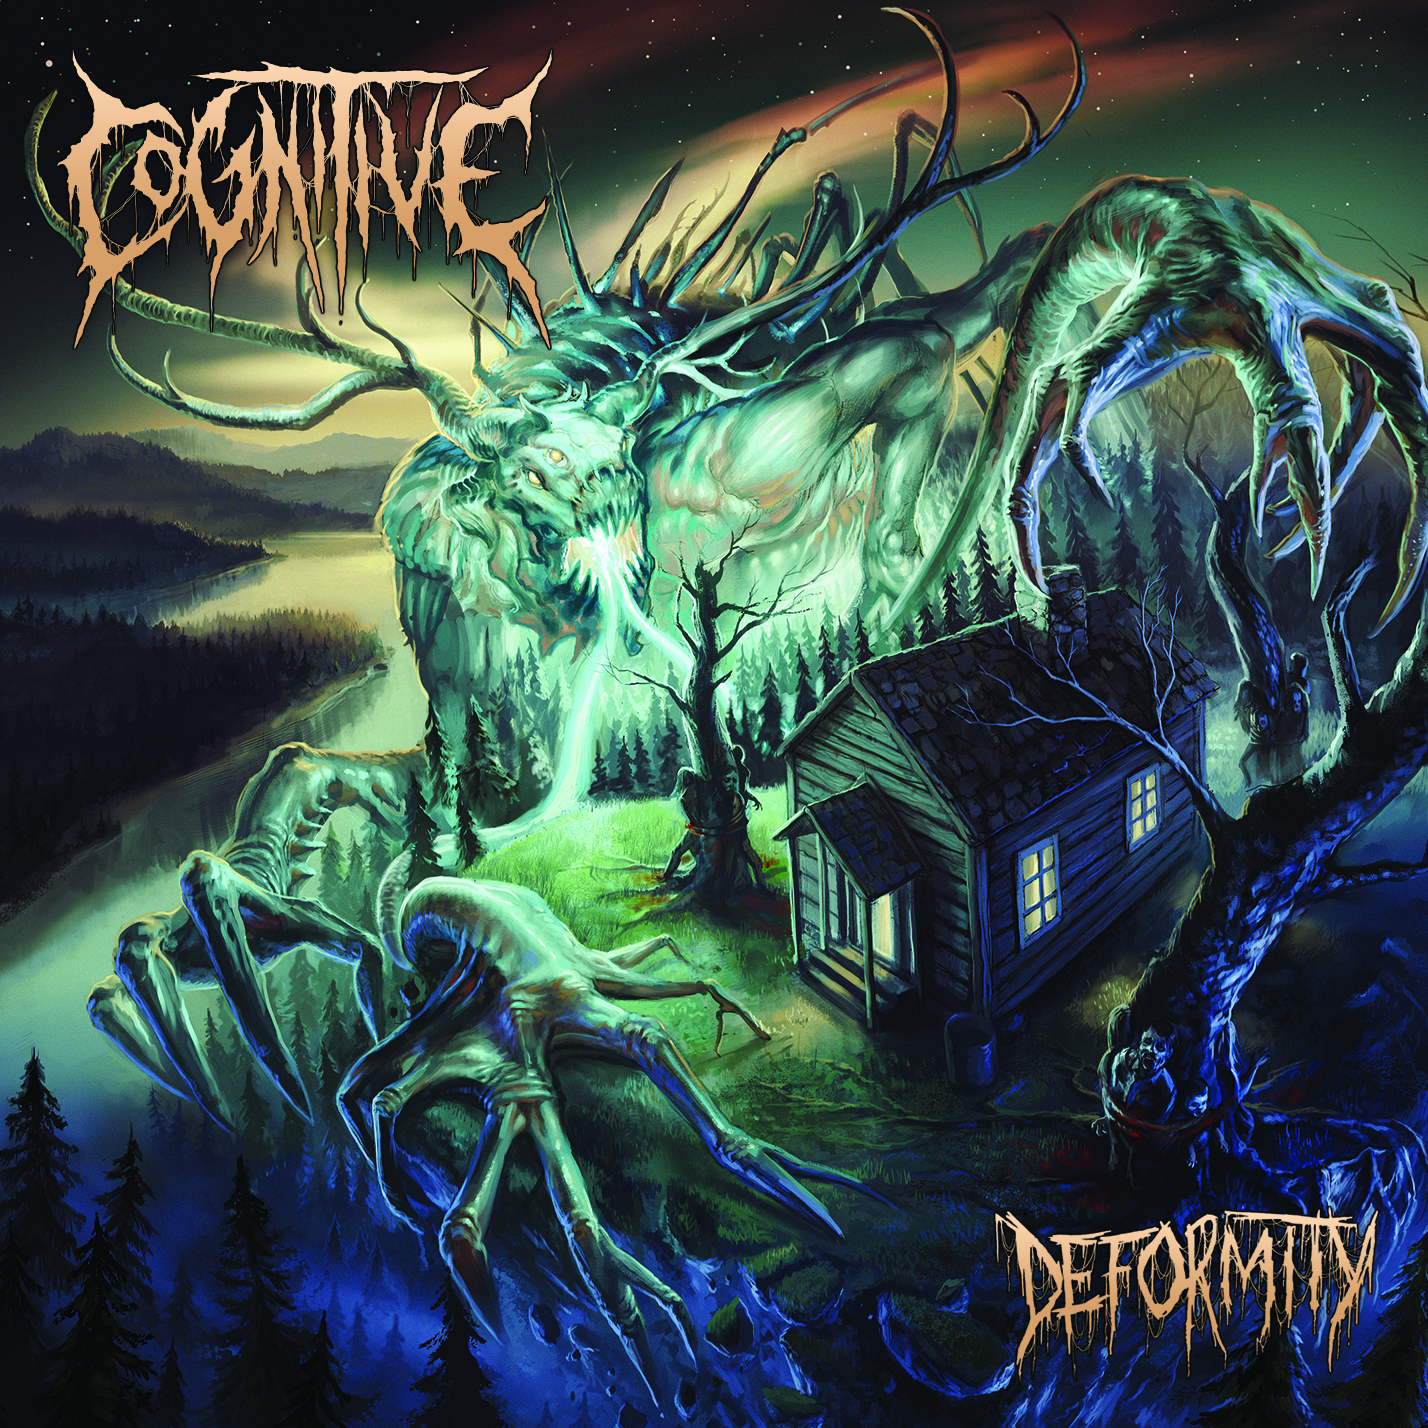 CognitiveDeformitycover